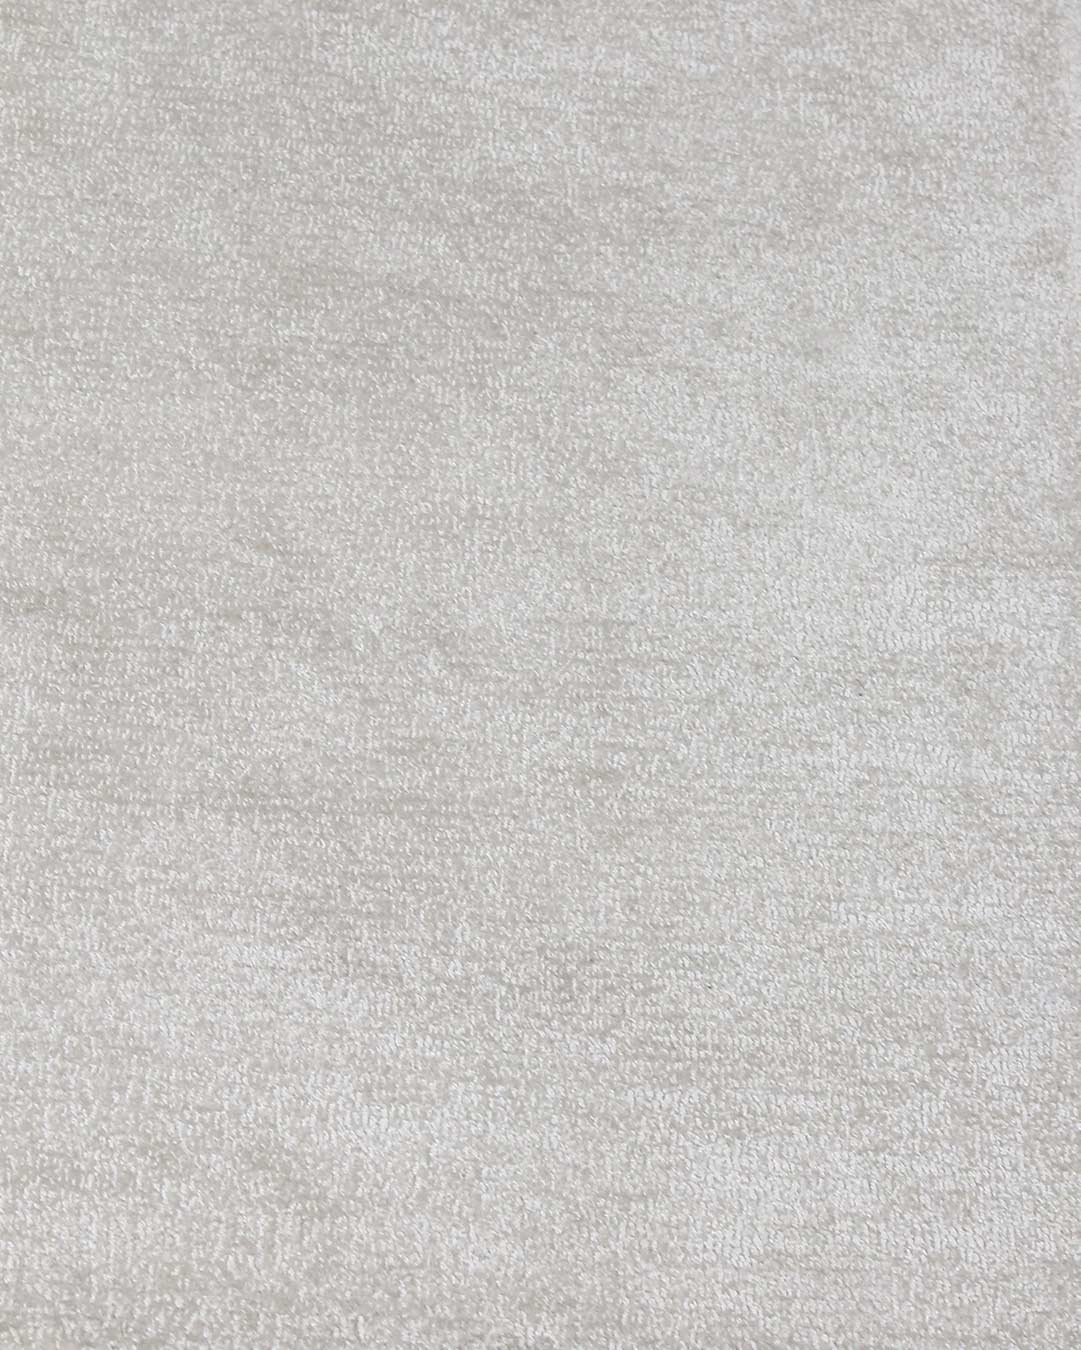 Close up view of textured Carlton rug in cream colour